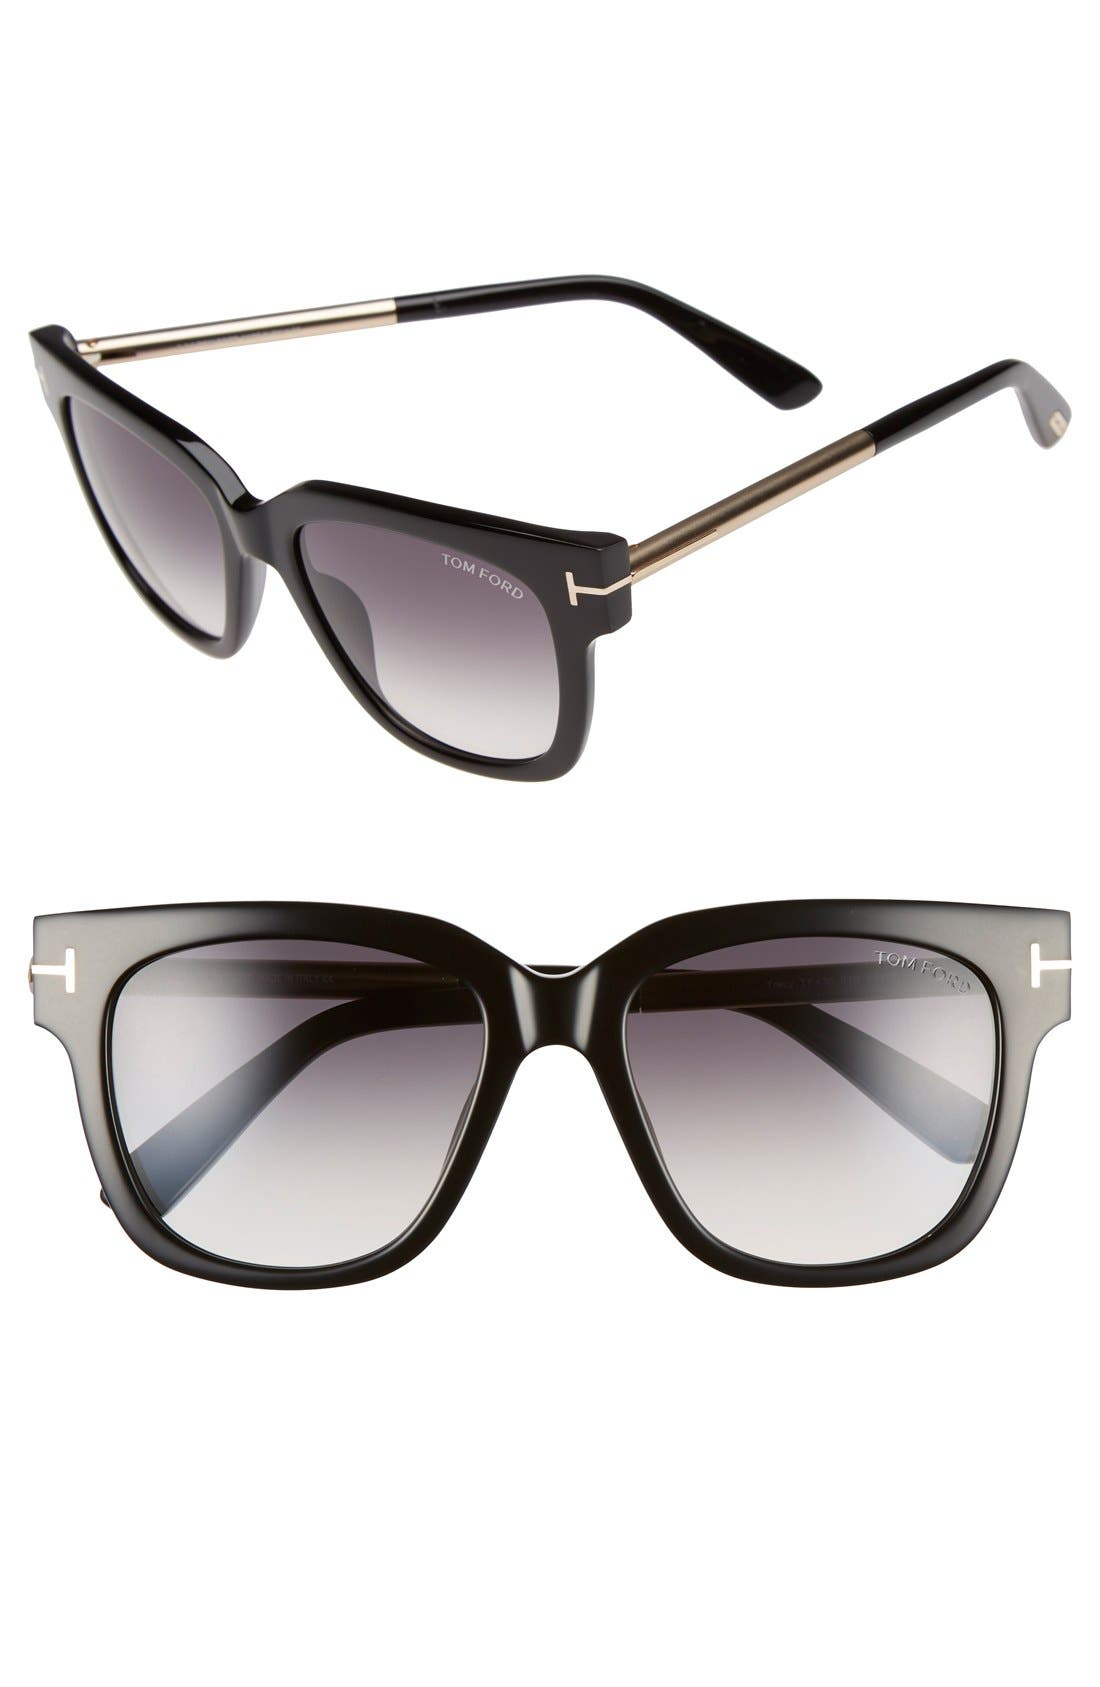 Alternate Image 1 Selected - Tom Ford 'Tracy' 53mm Retro Sunglasses